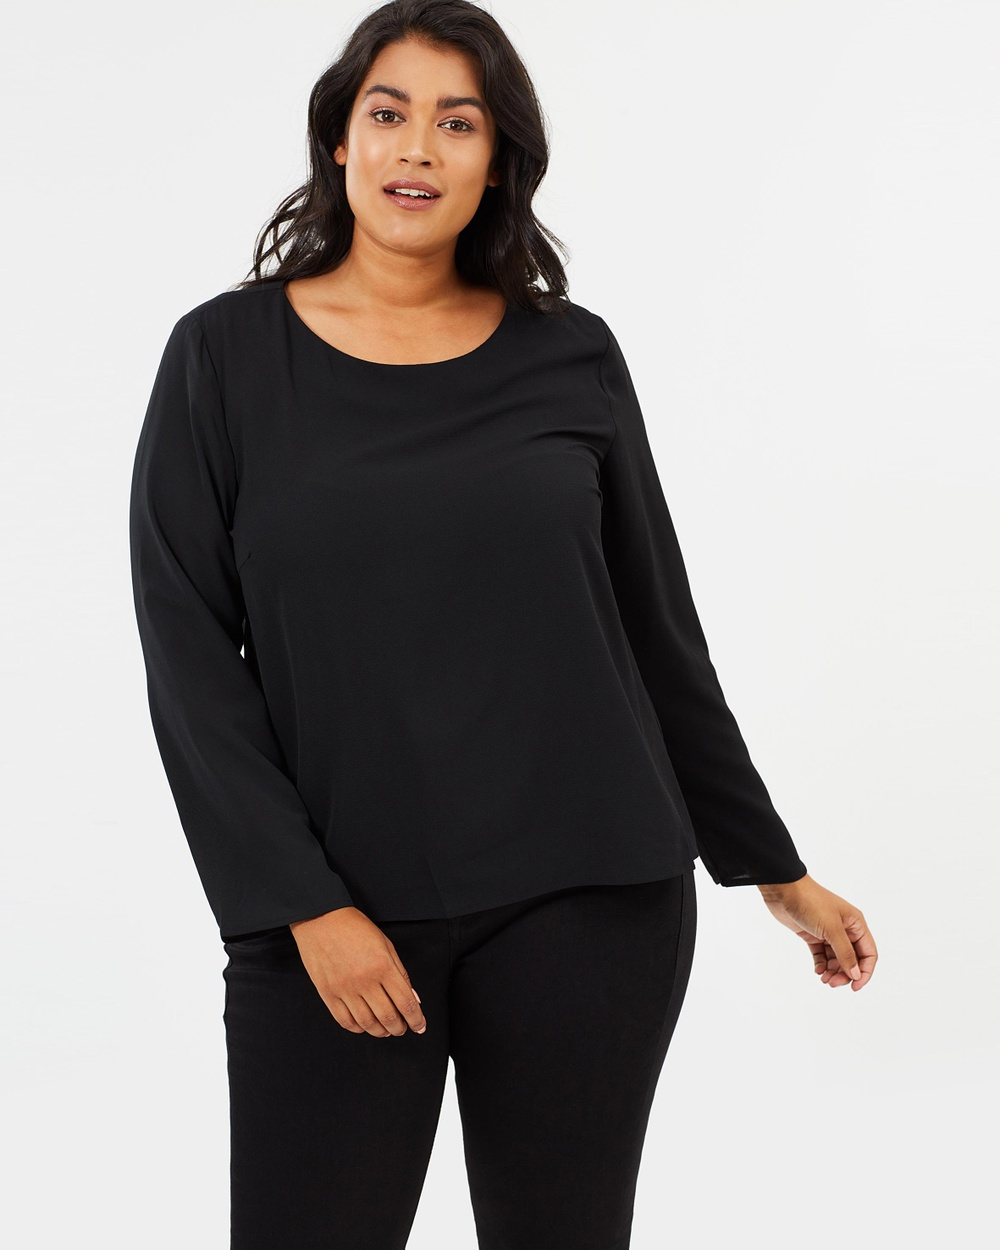 Atmos & Here Curvy ICONIC EXCLUSIVE Beverly Woven Top Tops Black ICONIC EXCLUSIVE Beverly Woven Top